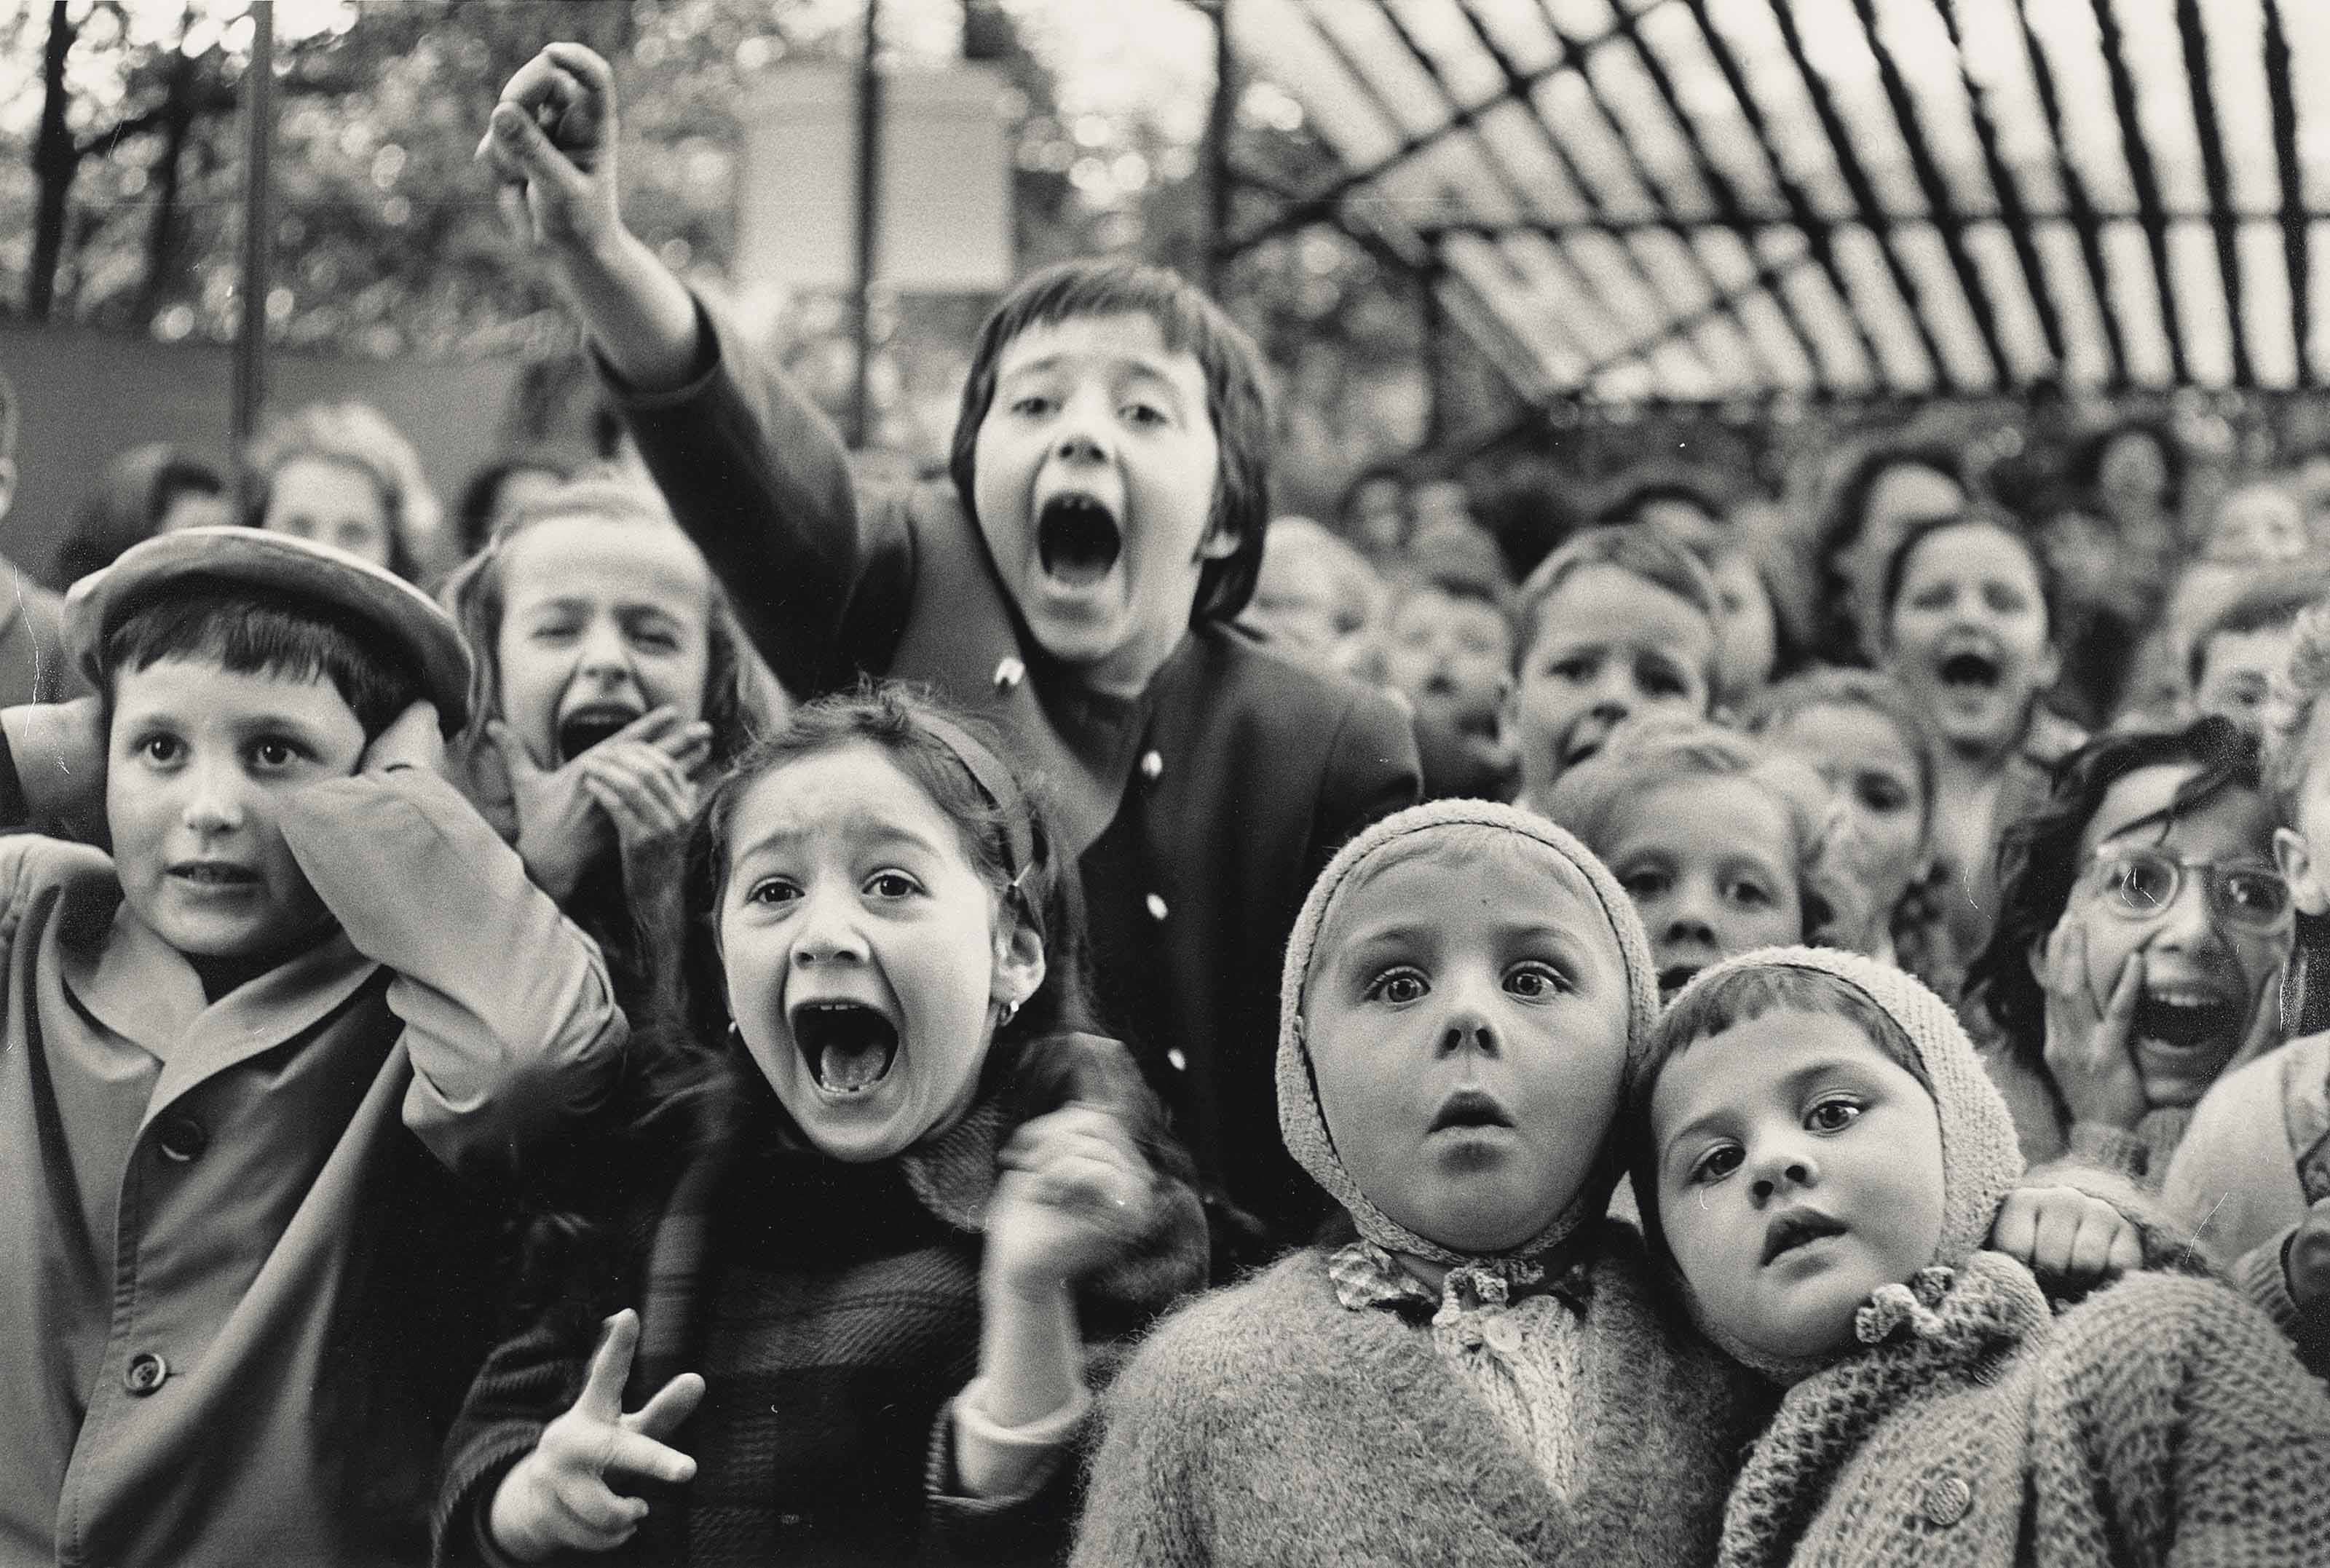 Puppet theatre, Paris, 1963